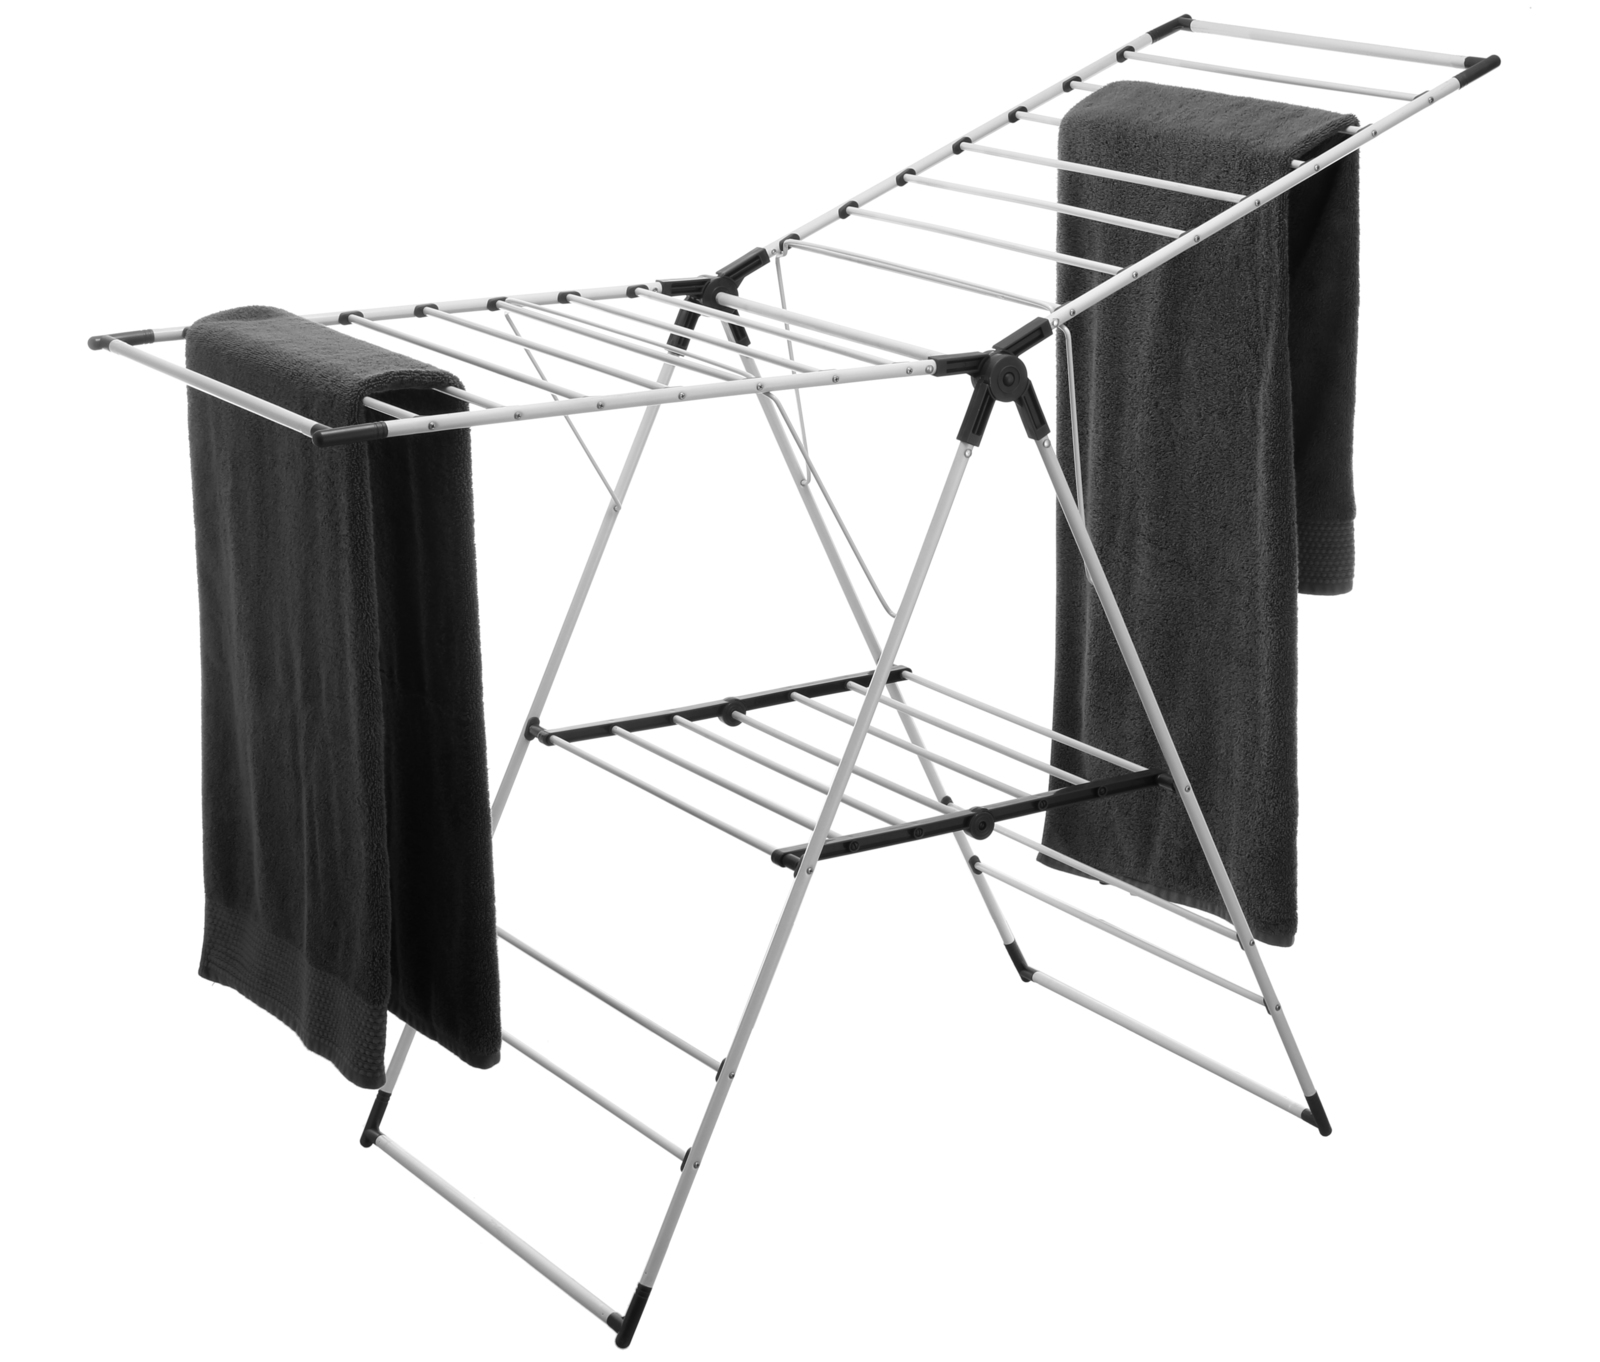 L.T. Williams - White Powder Coated Airer image